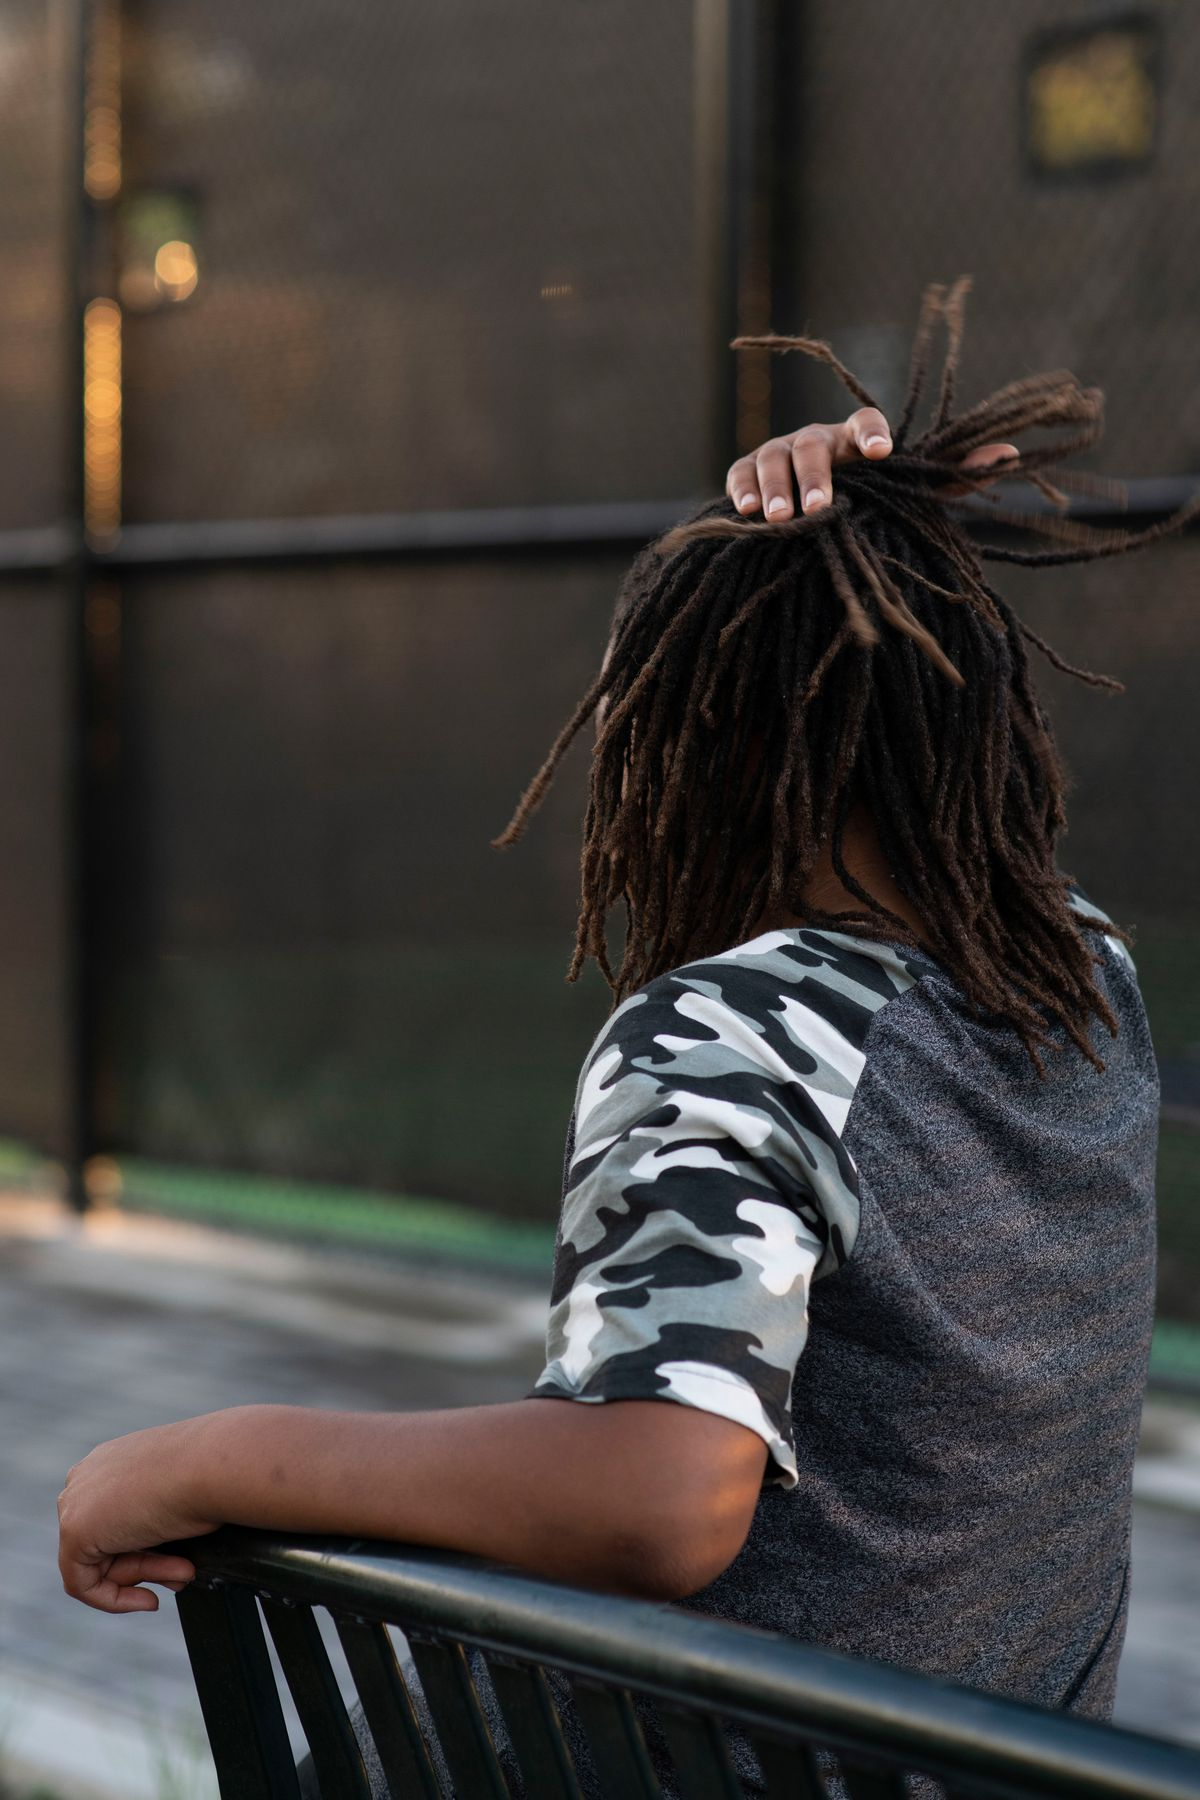 A Black boy sits on a park bench with his back toward the camera. He is touching his hair.